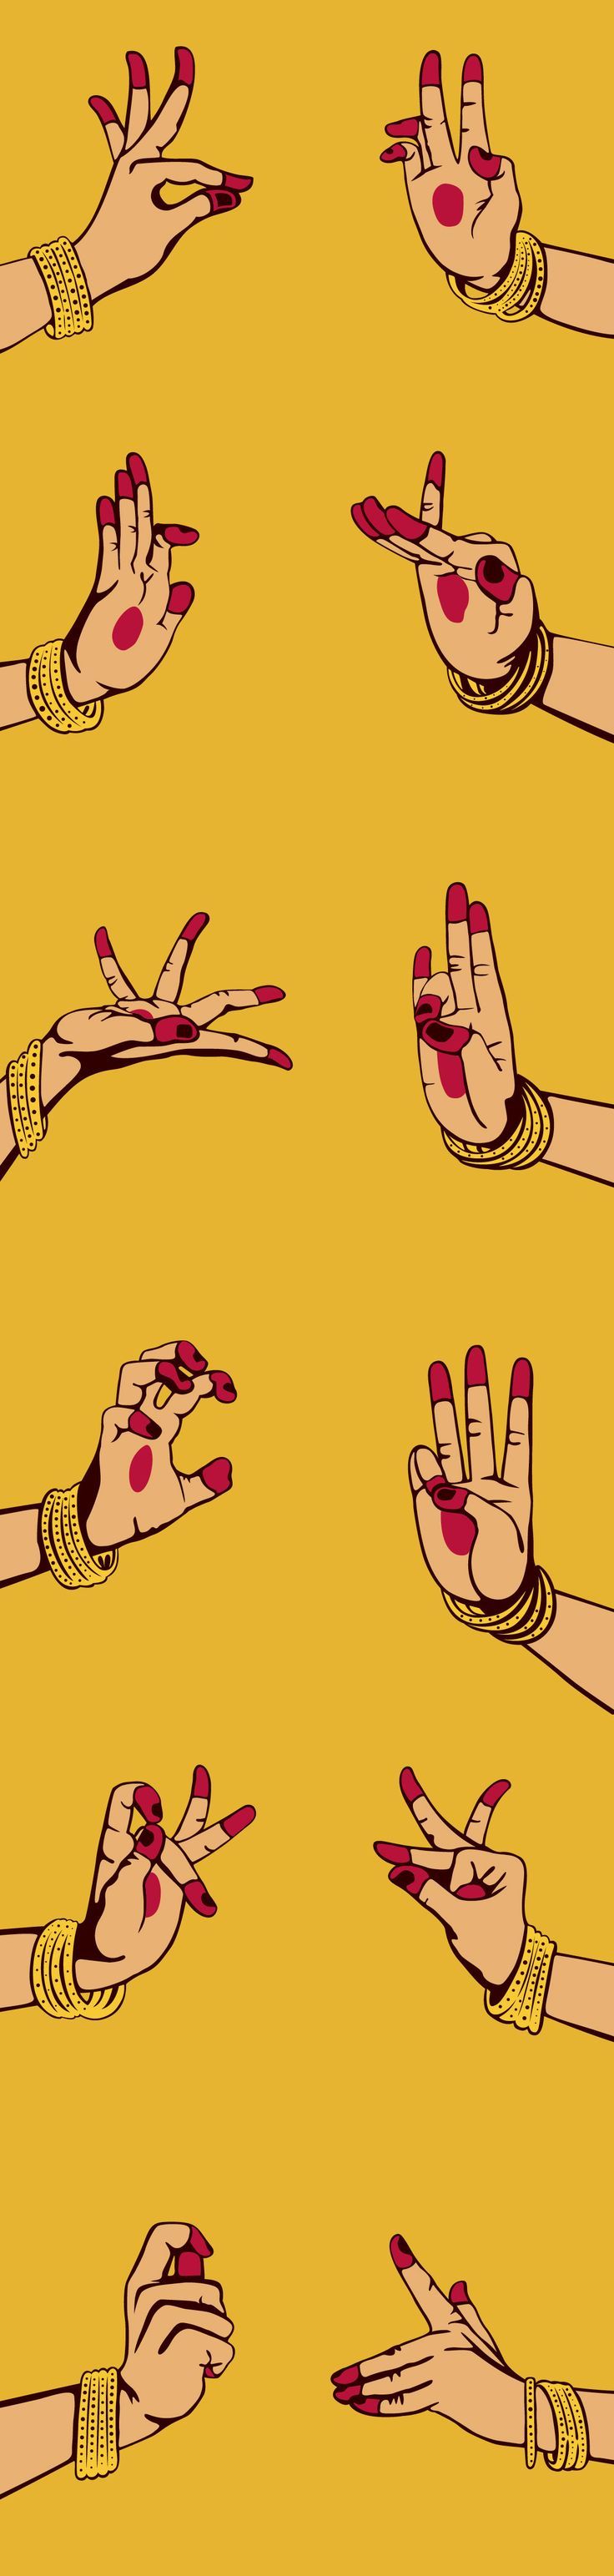 Illustration for LivingArt 2012 diary, featuring mudras. The mudras are symbolic hand gestures in the classical Indian dance of Bharat Natyam.